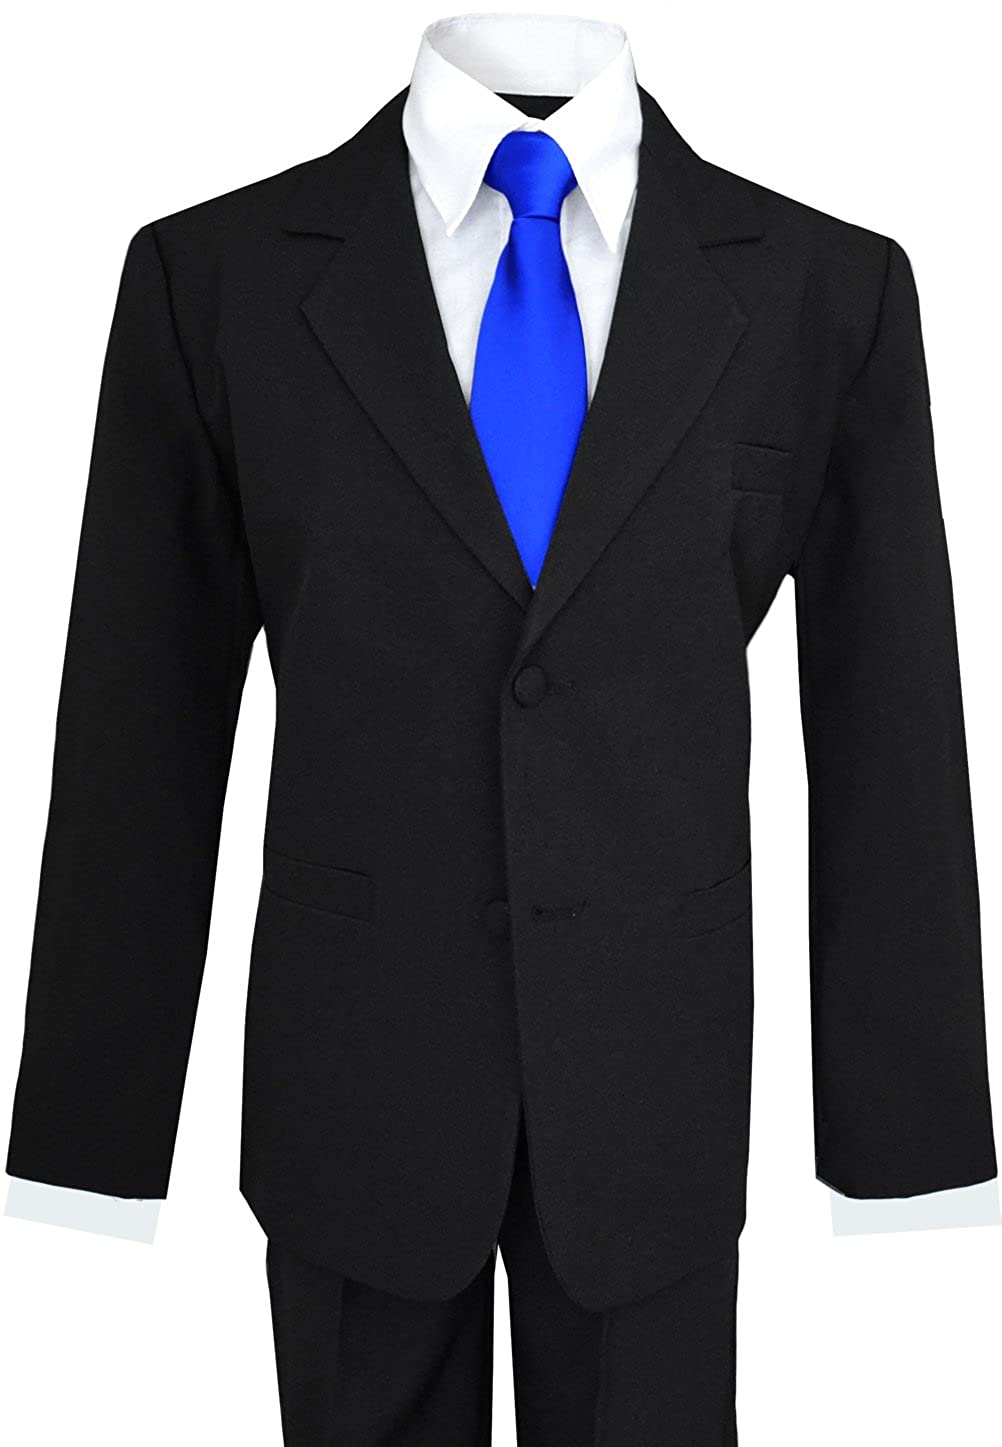 Big Boys Suits in Black with Royal Blue Neck Tie